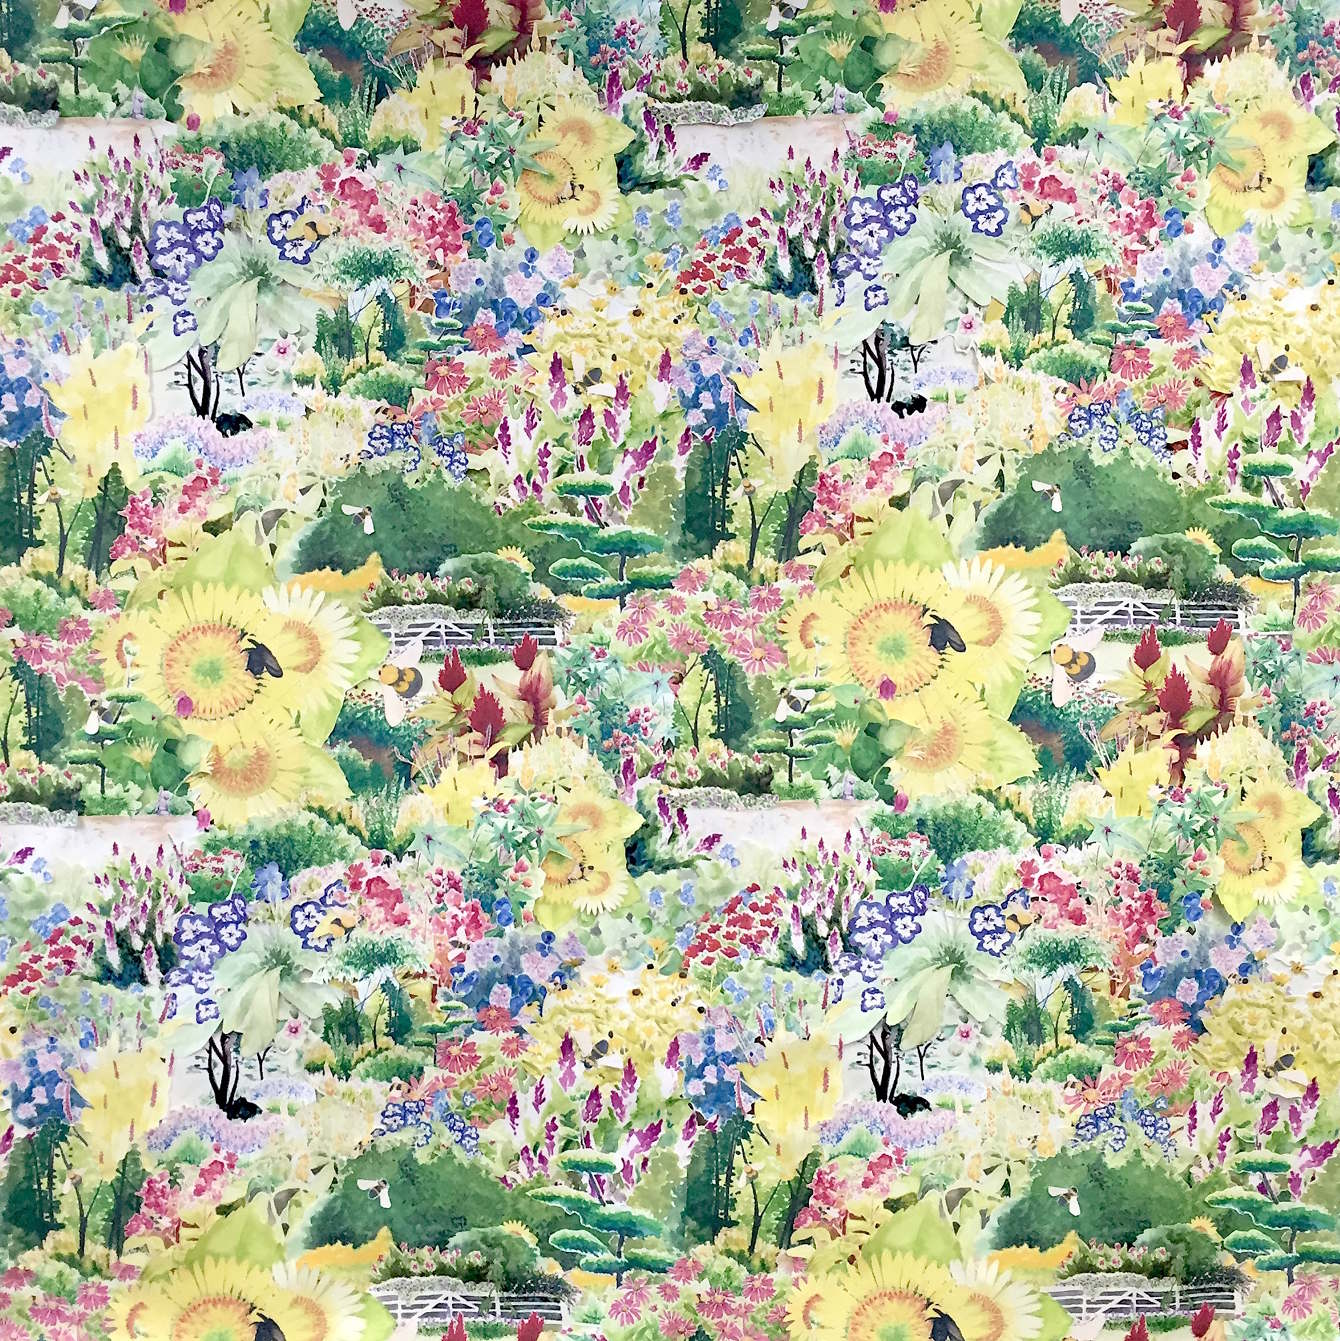 """""""Wild Countryside"""" 8ft by 8ft, scans of original watercolor illustration collaged into a two by two repeat"""